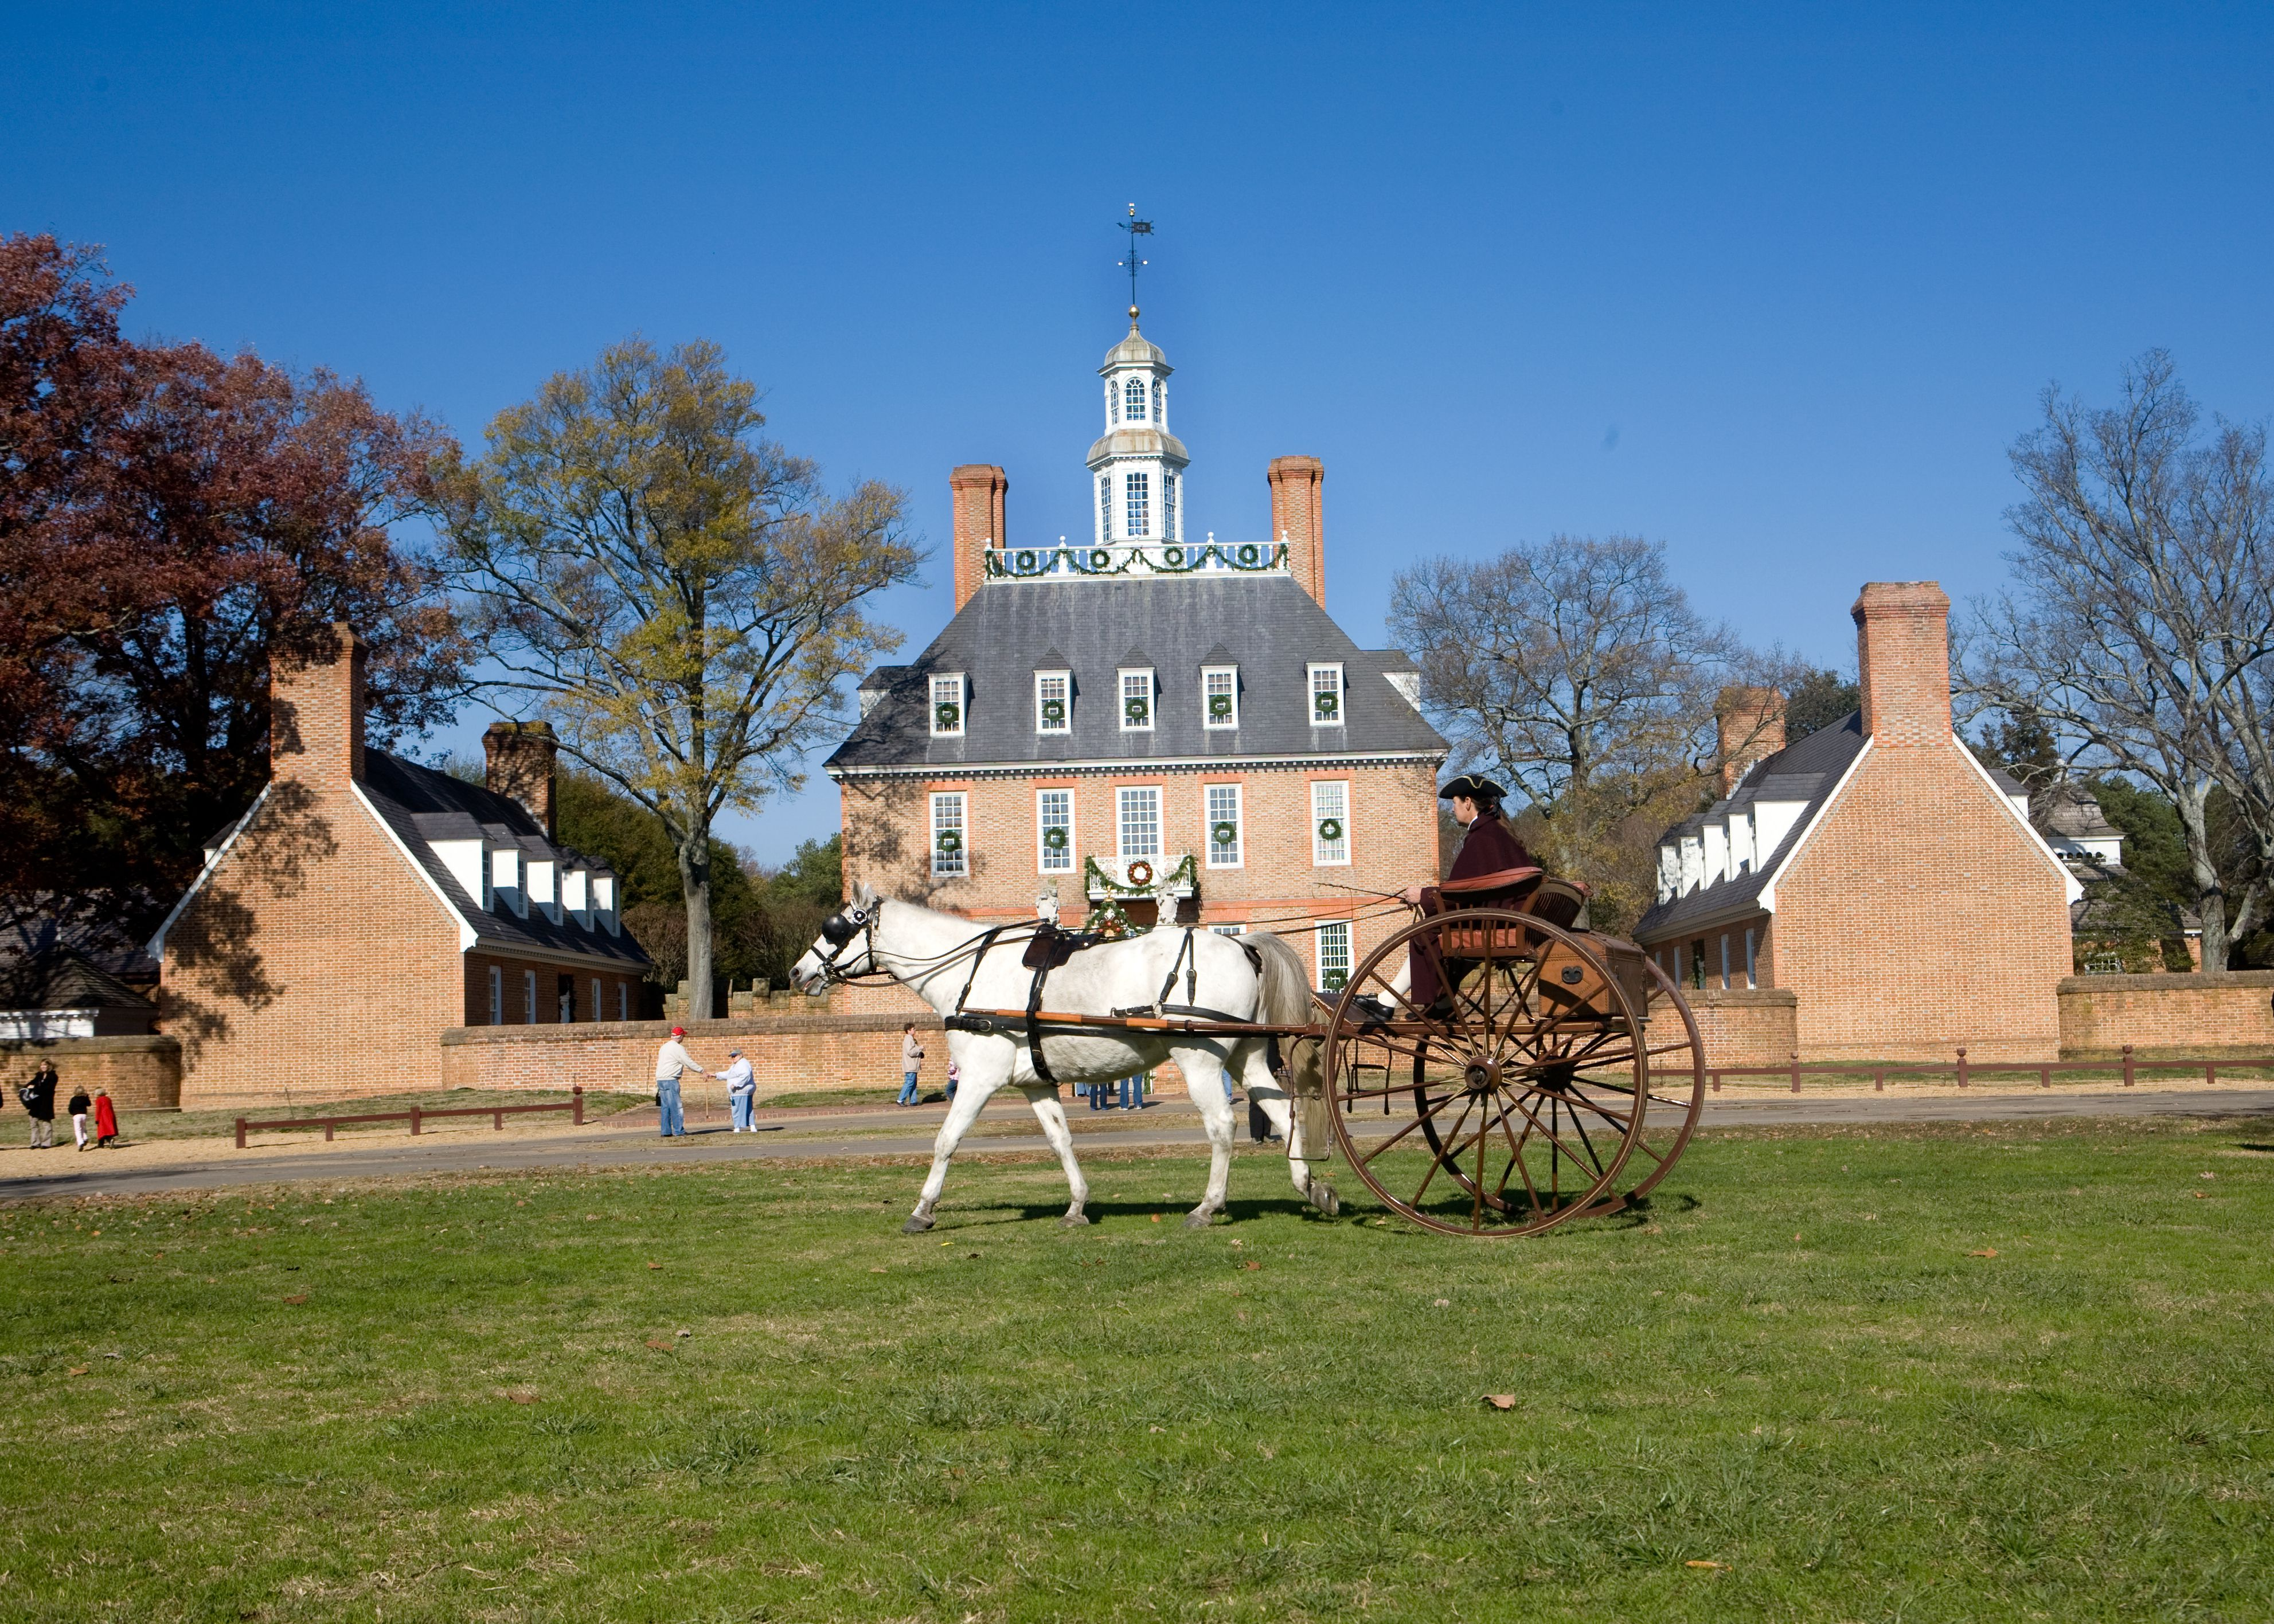 Colonial era horse drawn carriage in front of the Governor's Palace